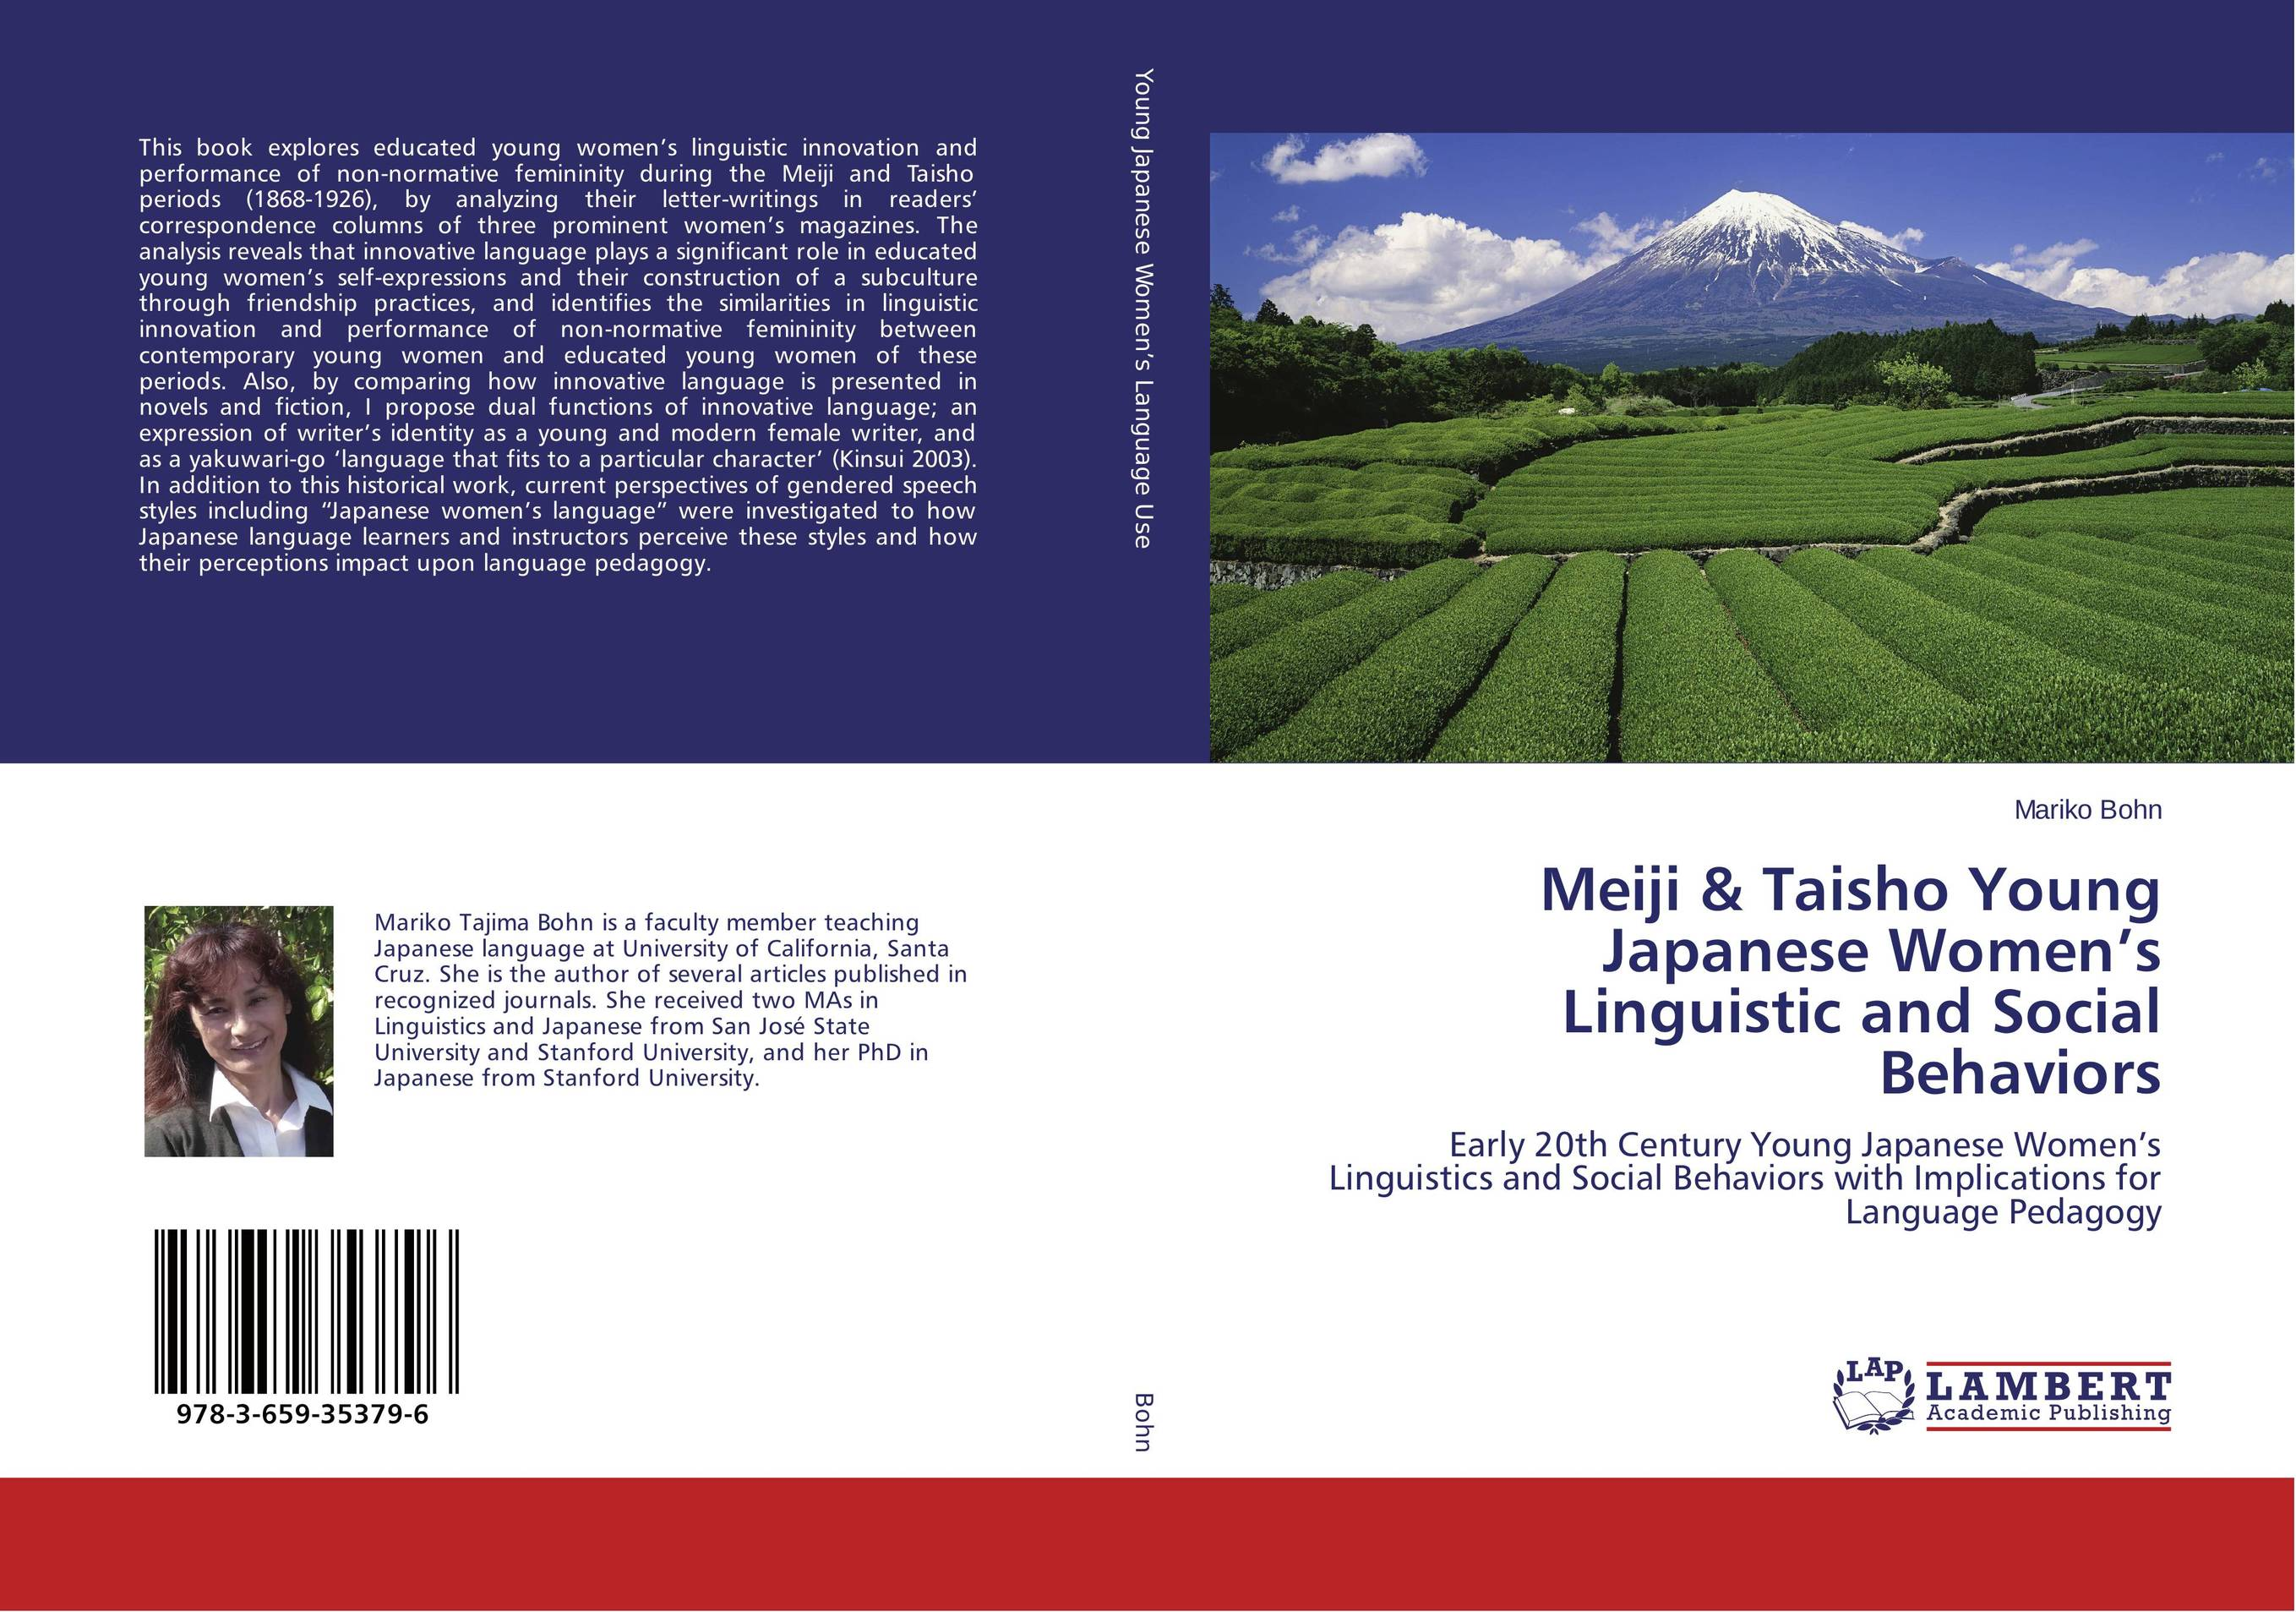 Meiji & Taisho Young Japanese Women's Linguistic and Social Behaviors marco zolow spirituality in health and wellness practices of older adults